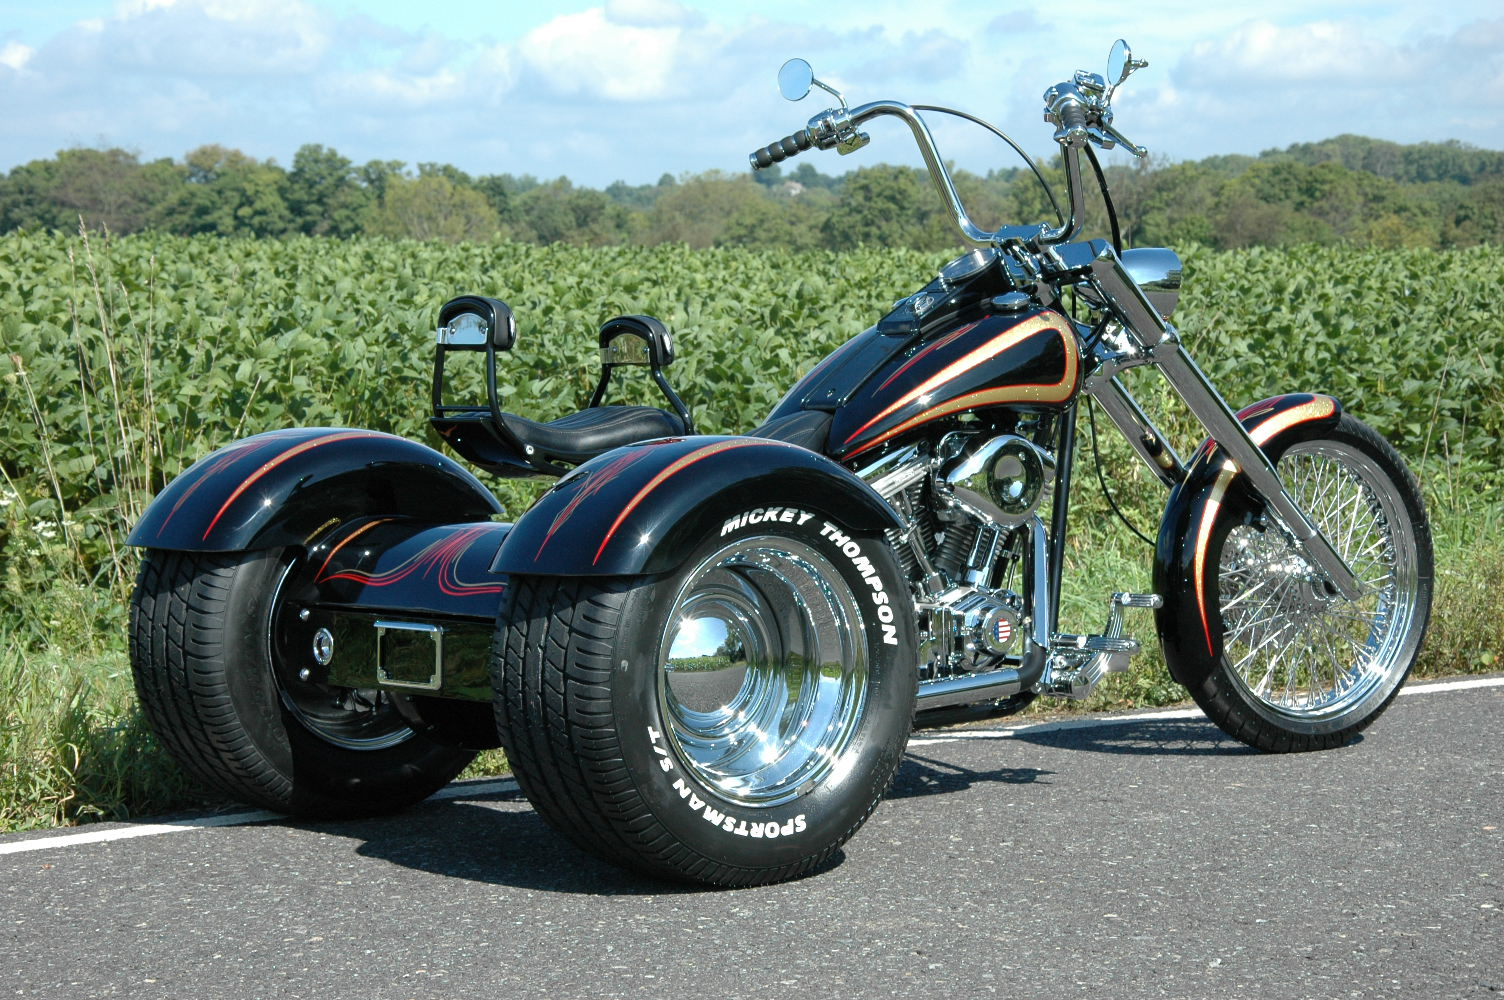 new trike softail chopper frame rolling chassis harley ebay. Black Bedroom Furniture Sets. Home Design Ideas